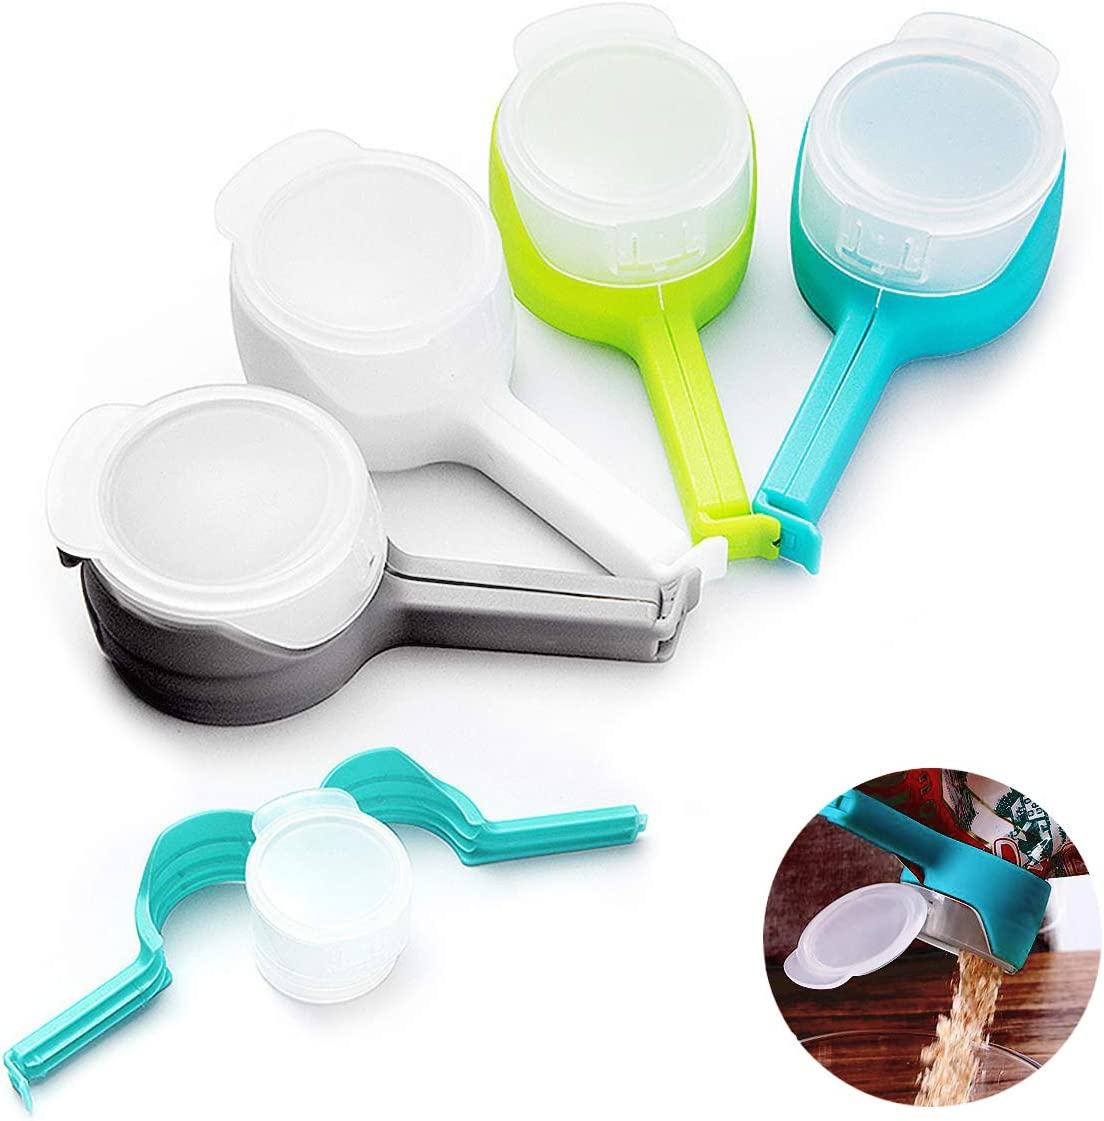 Food Storage Sealing Clips, Bag Clips with Pour Spouts, Kitchen Chip Bag Clips, Plastic Cap Sealer Clips for Kitchen Food Storage and Organization (4 PCS)